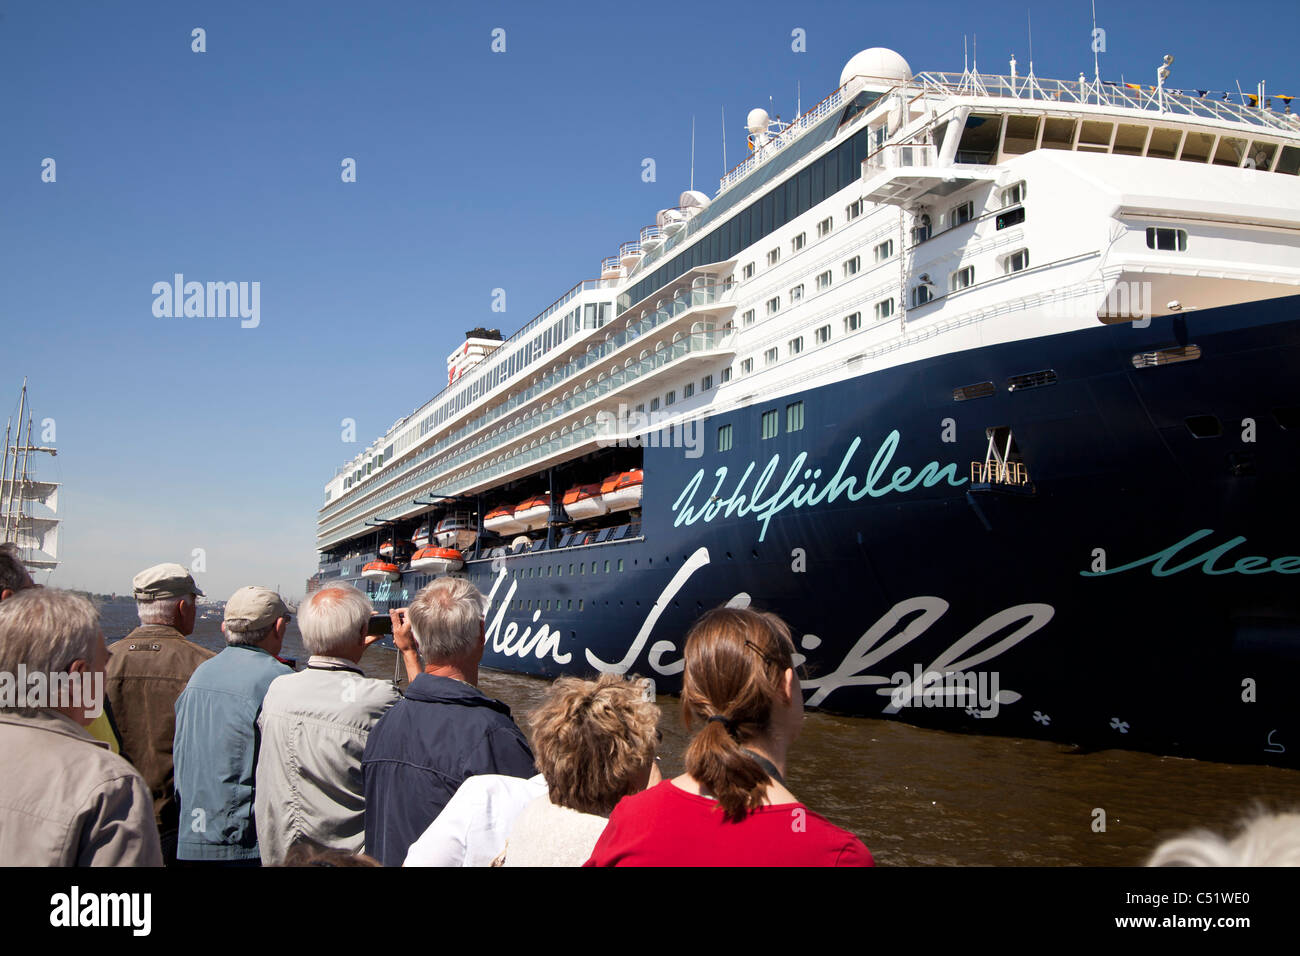 cruise ship Mein Schiff at the Harbour Birthday 2011 in the free and Hanseatic City of Hamburg, Germany - Stock Image